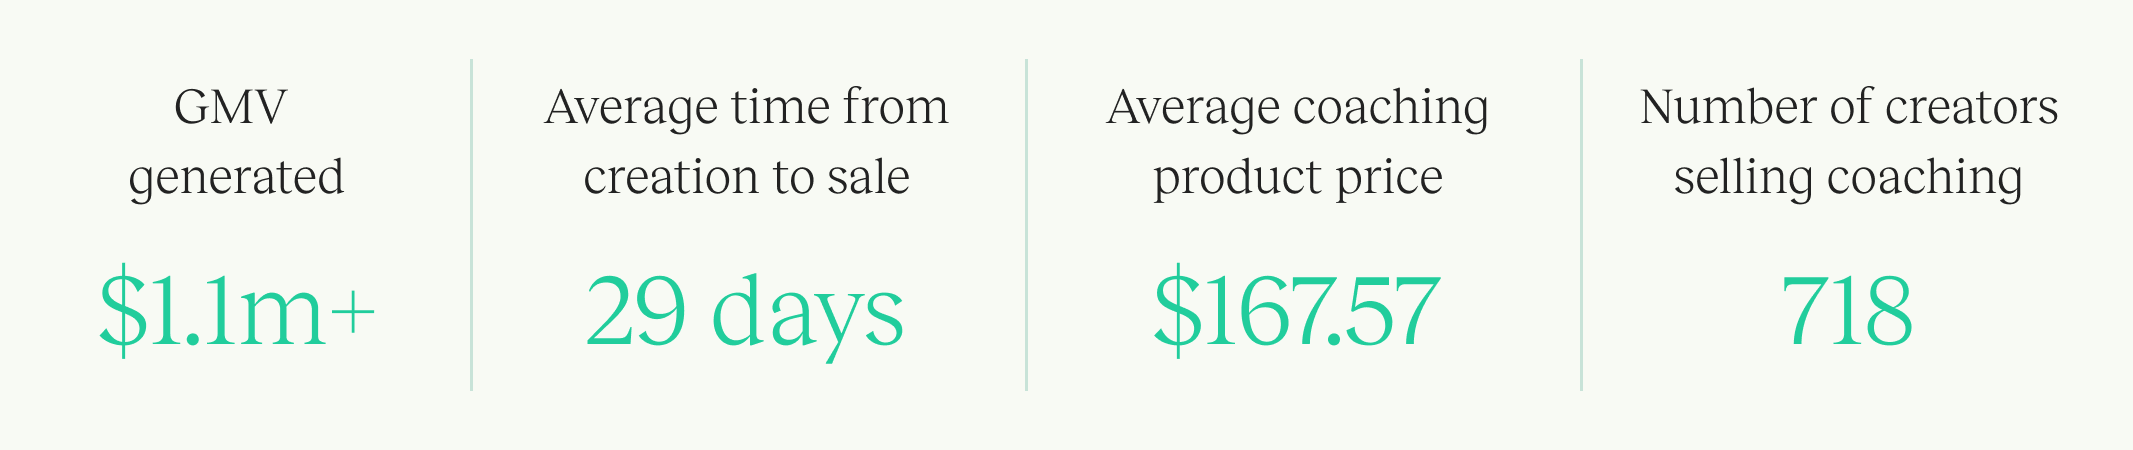 Teachable statistics on coaching product